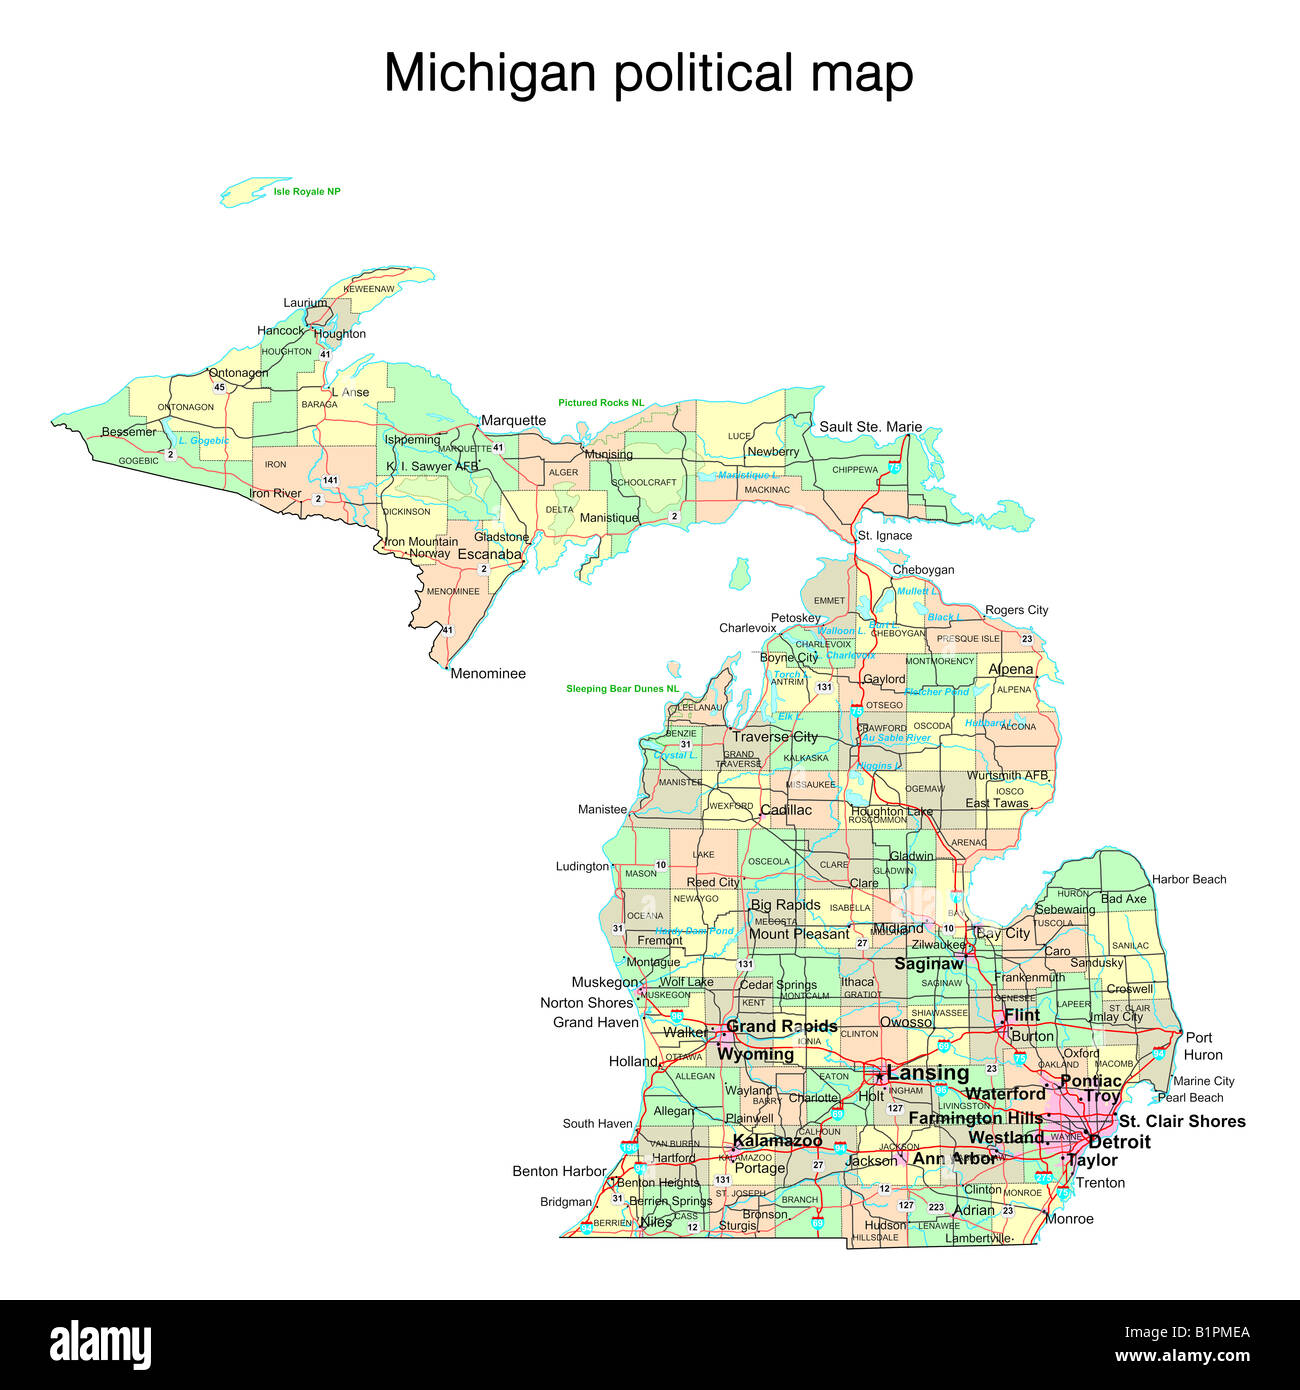 Michigan State Political Map Stock Photo Royalty Free Image - Michigan state map